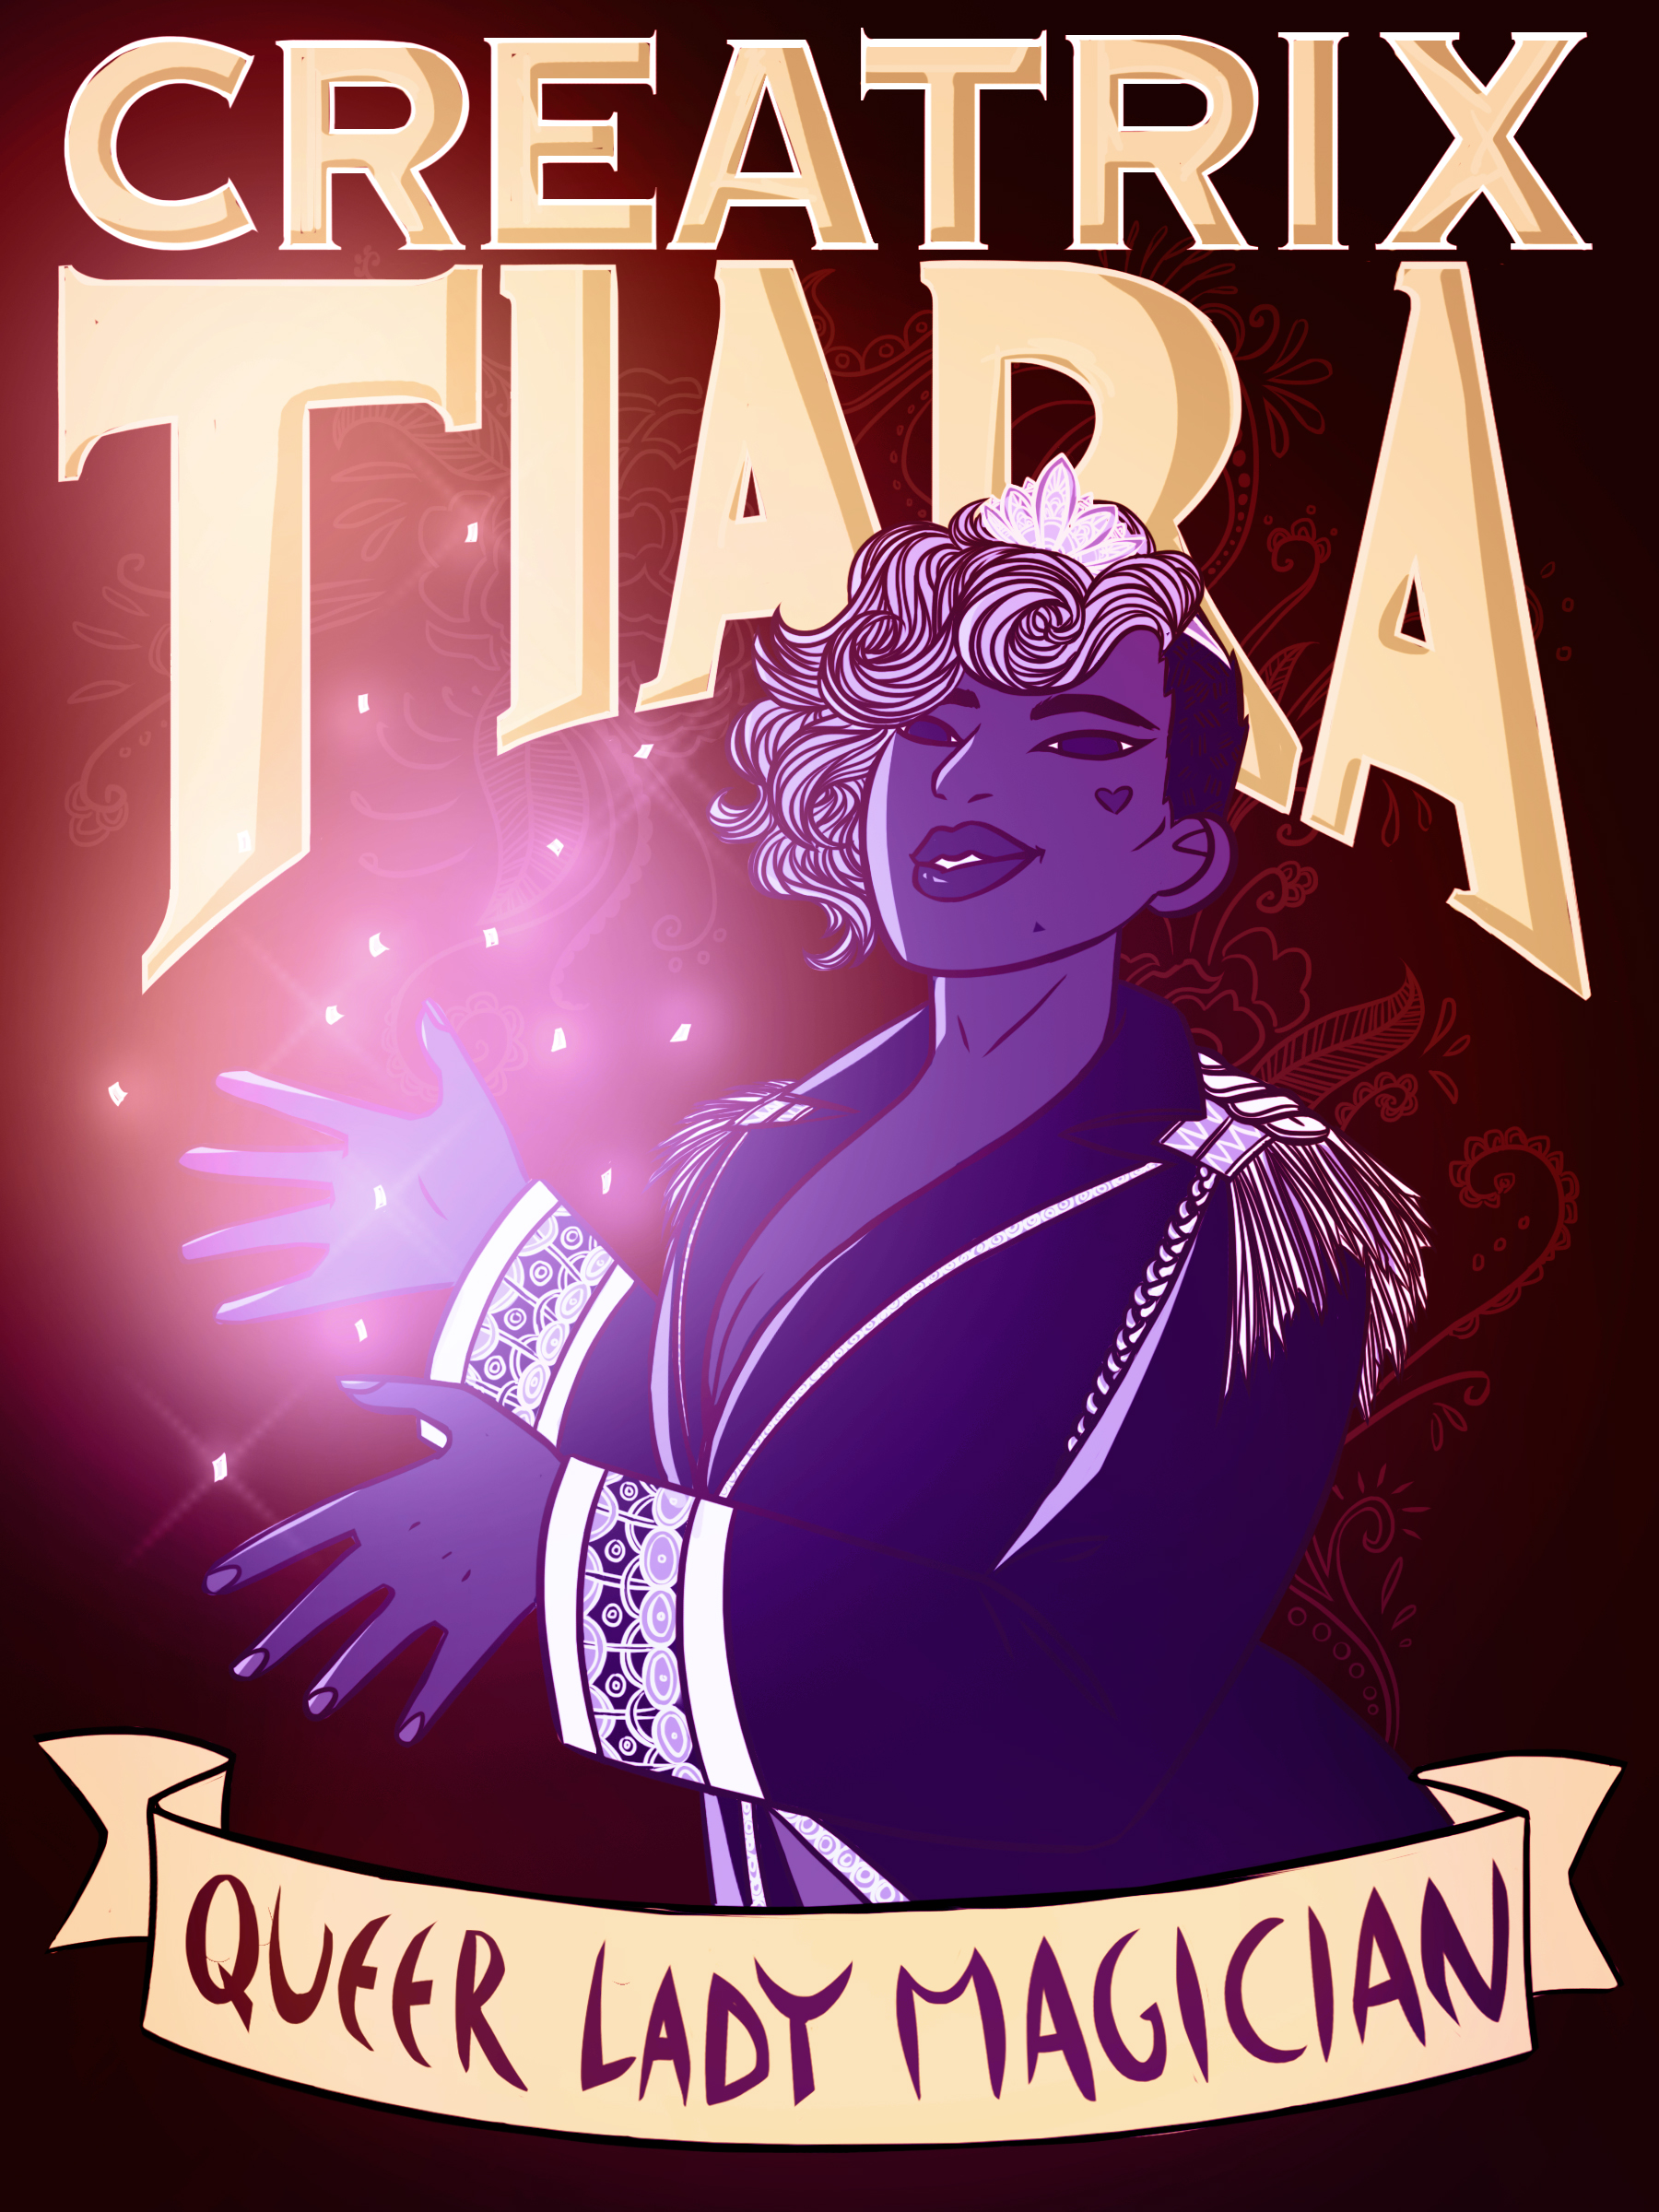 CREATRIX TIARA:QUEER LADY MAGICIAN - Queer, feminist, anti-racist, decolonial stage magic.Poster art by Sam Dow / Charmingly-AntiquatedQueer Lady Magician is coming to the United States in 2020!